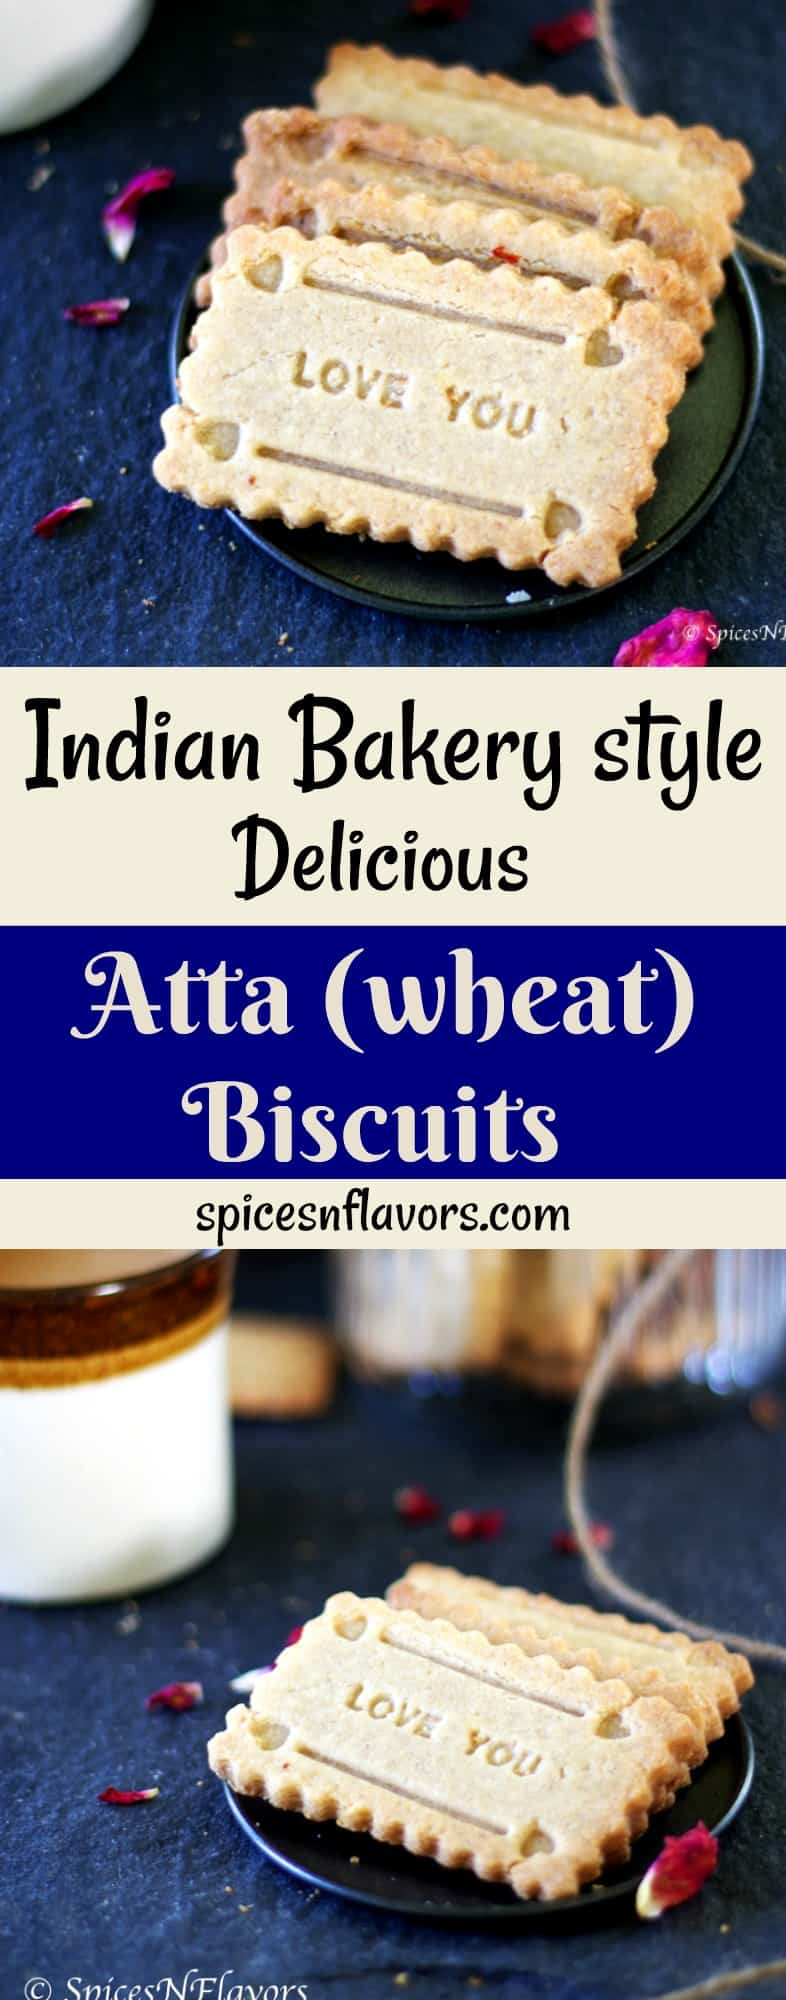 pin image of atta biscuits whole wheat biscuits